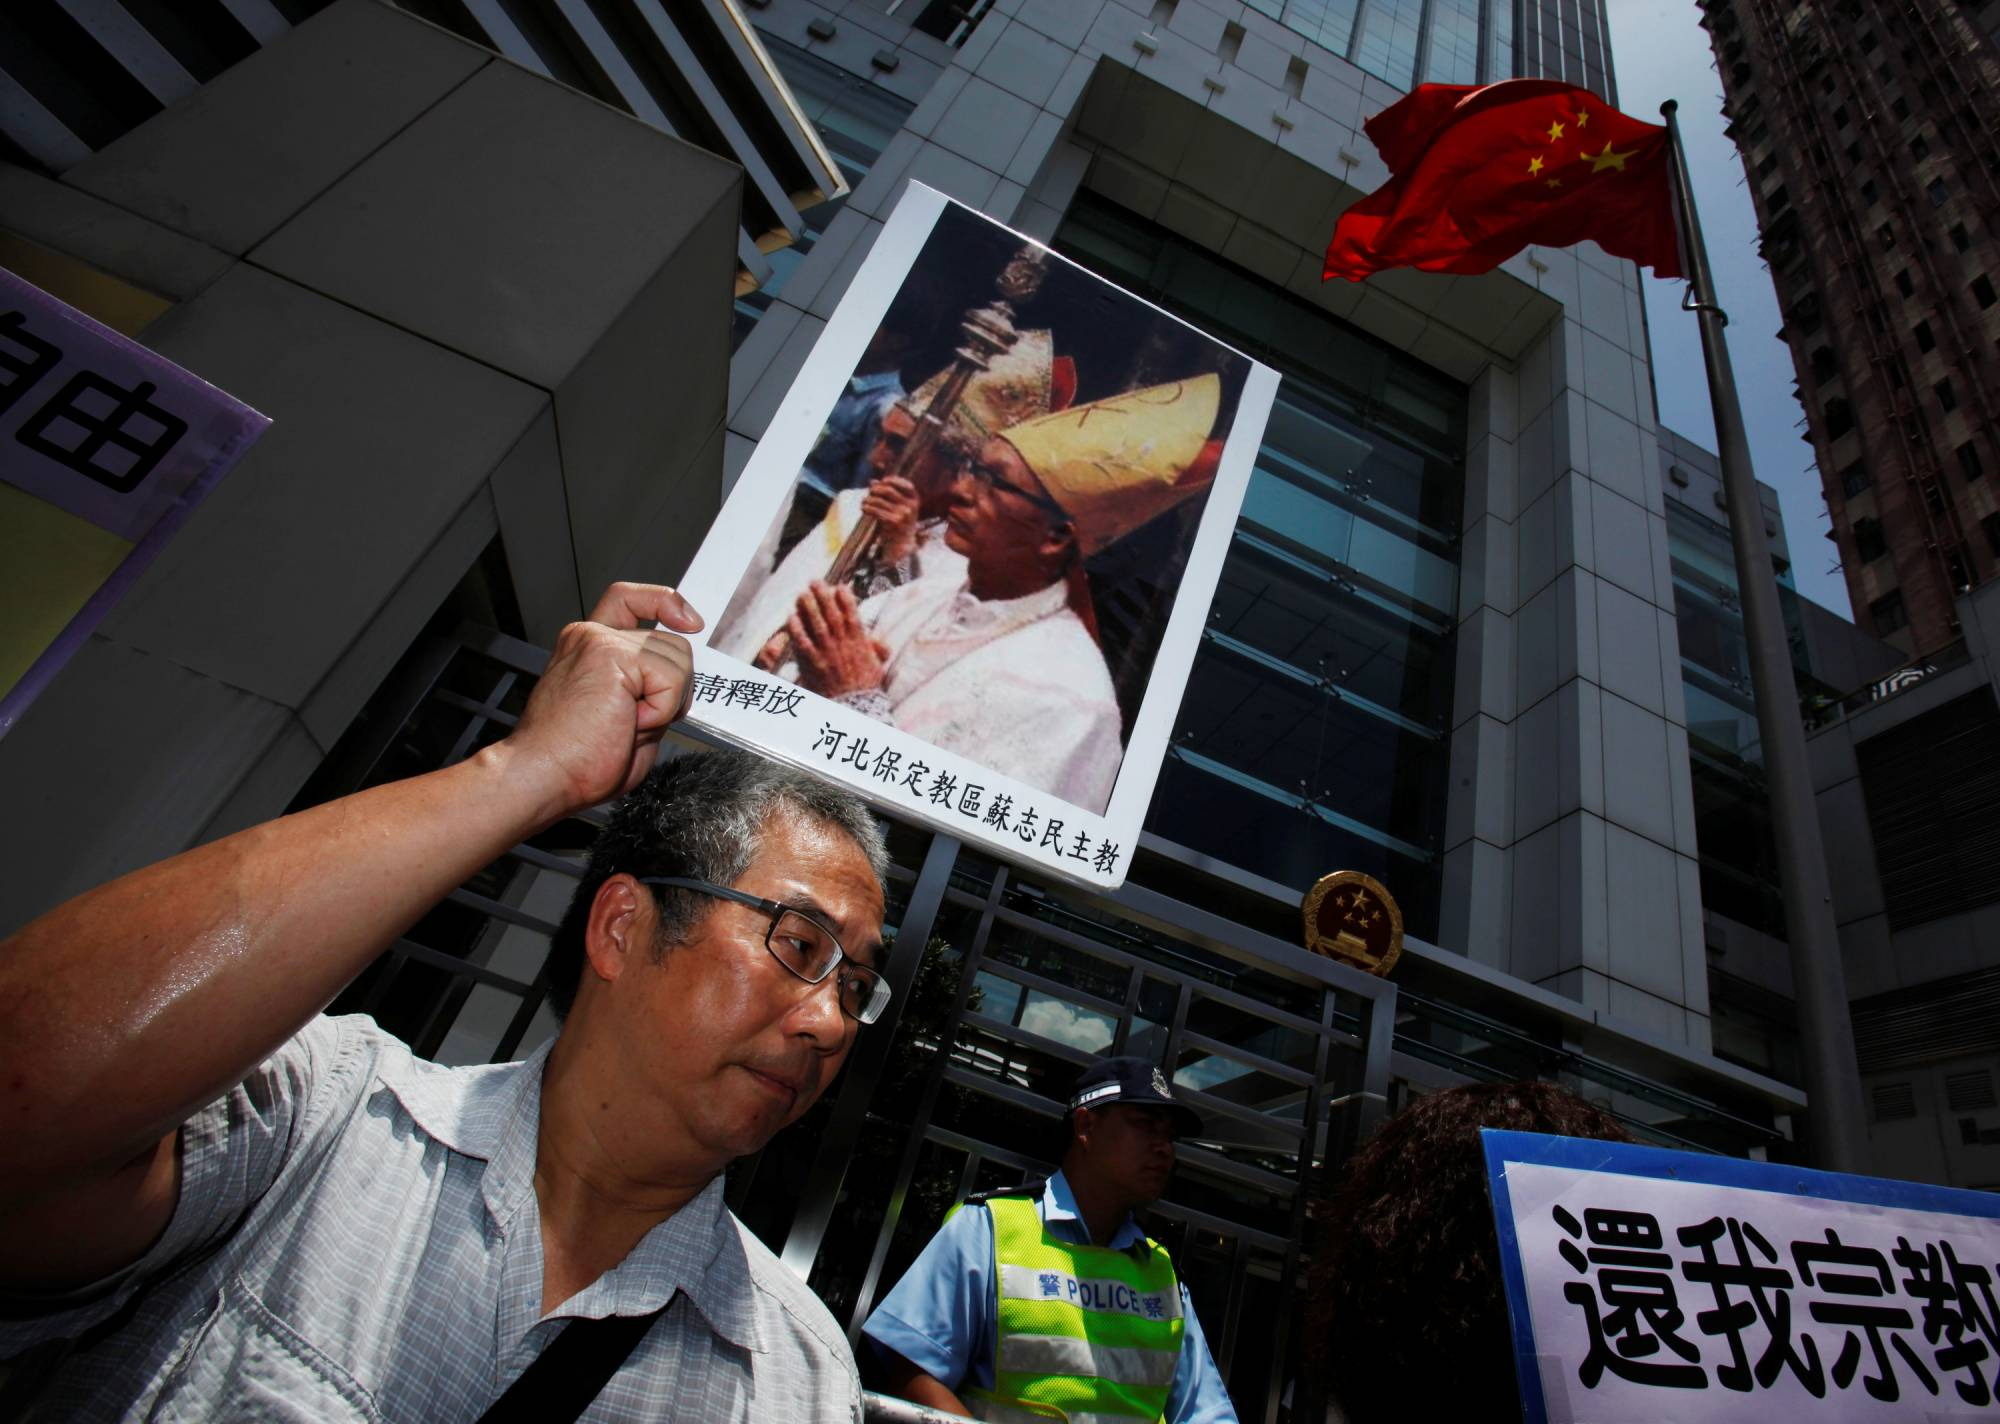 A protester carries a portrait of Bishop Su Zhimin of Baoding in China's Hebei province, in Hong Kong in 2012. The bishop was imprisoned in China and is now unreachable. | REUTERS